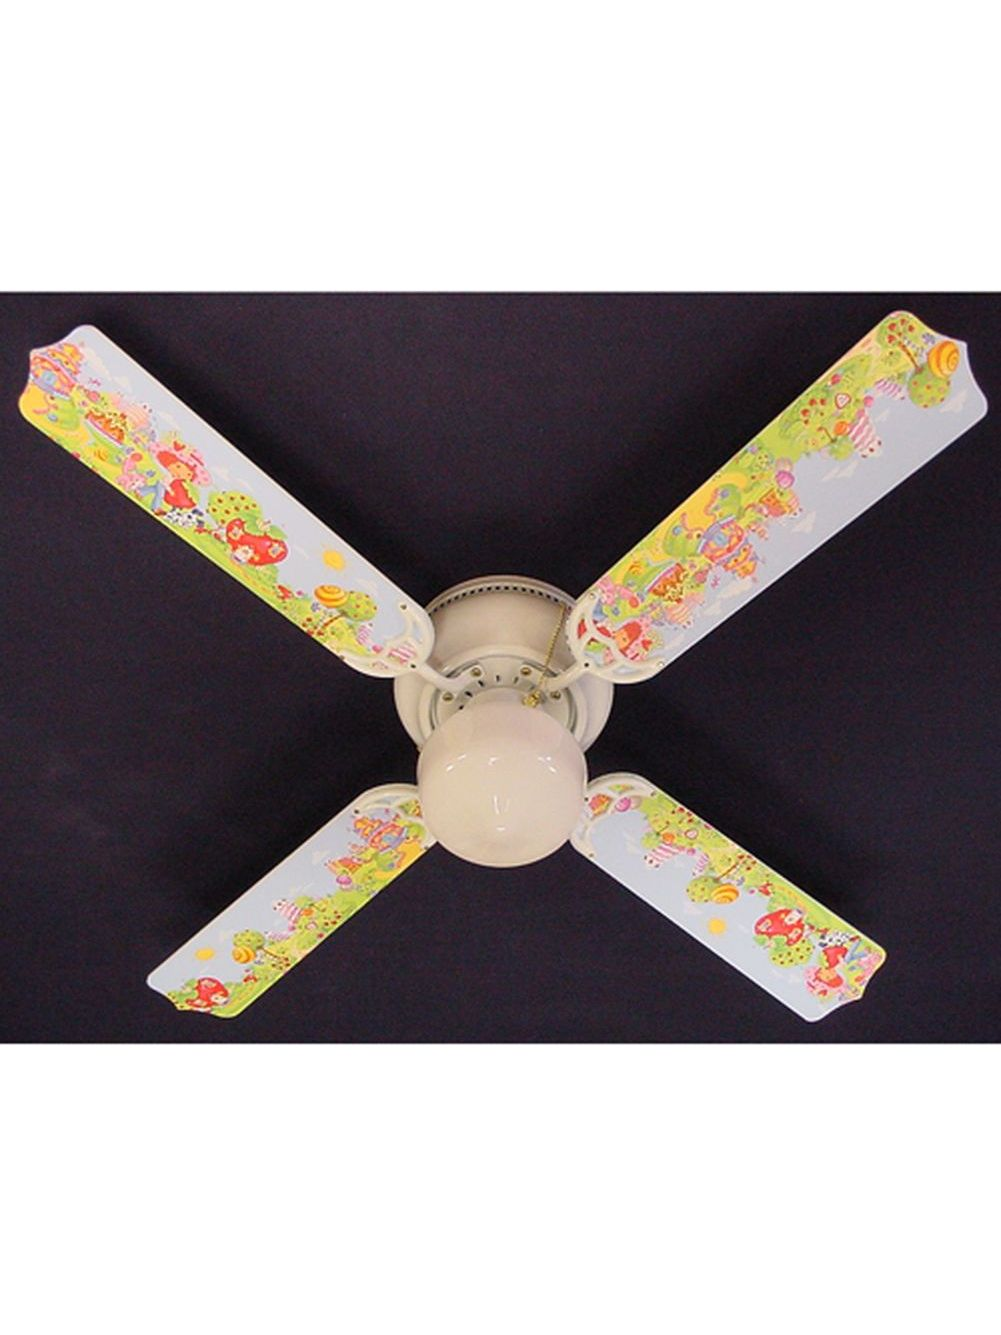 Ceiling Fan Girls Room Girls Strawberry Shortcake Print Blades 42in Ceiling Fan Light Kit